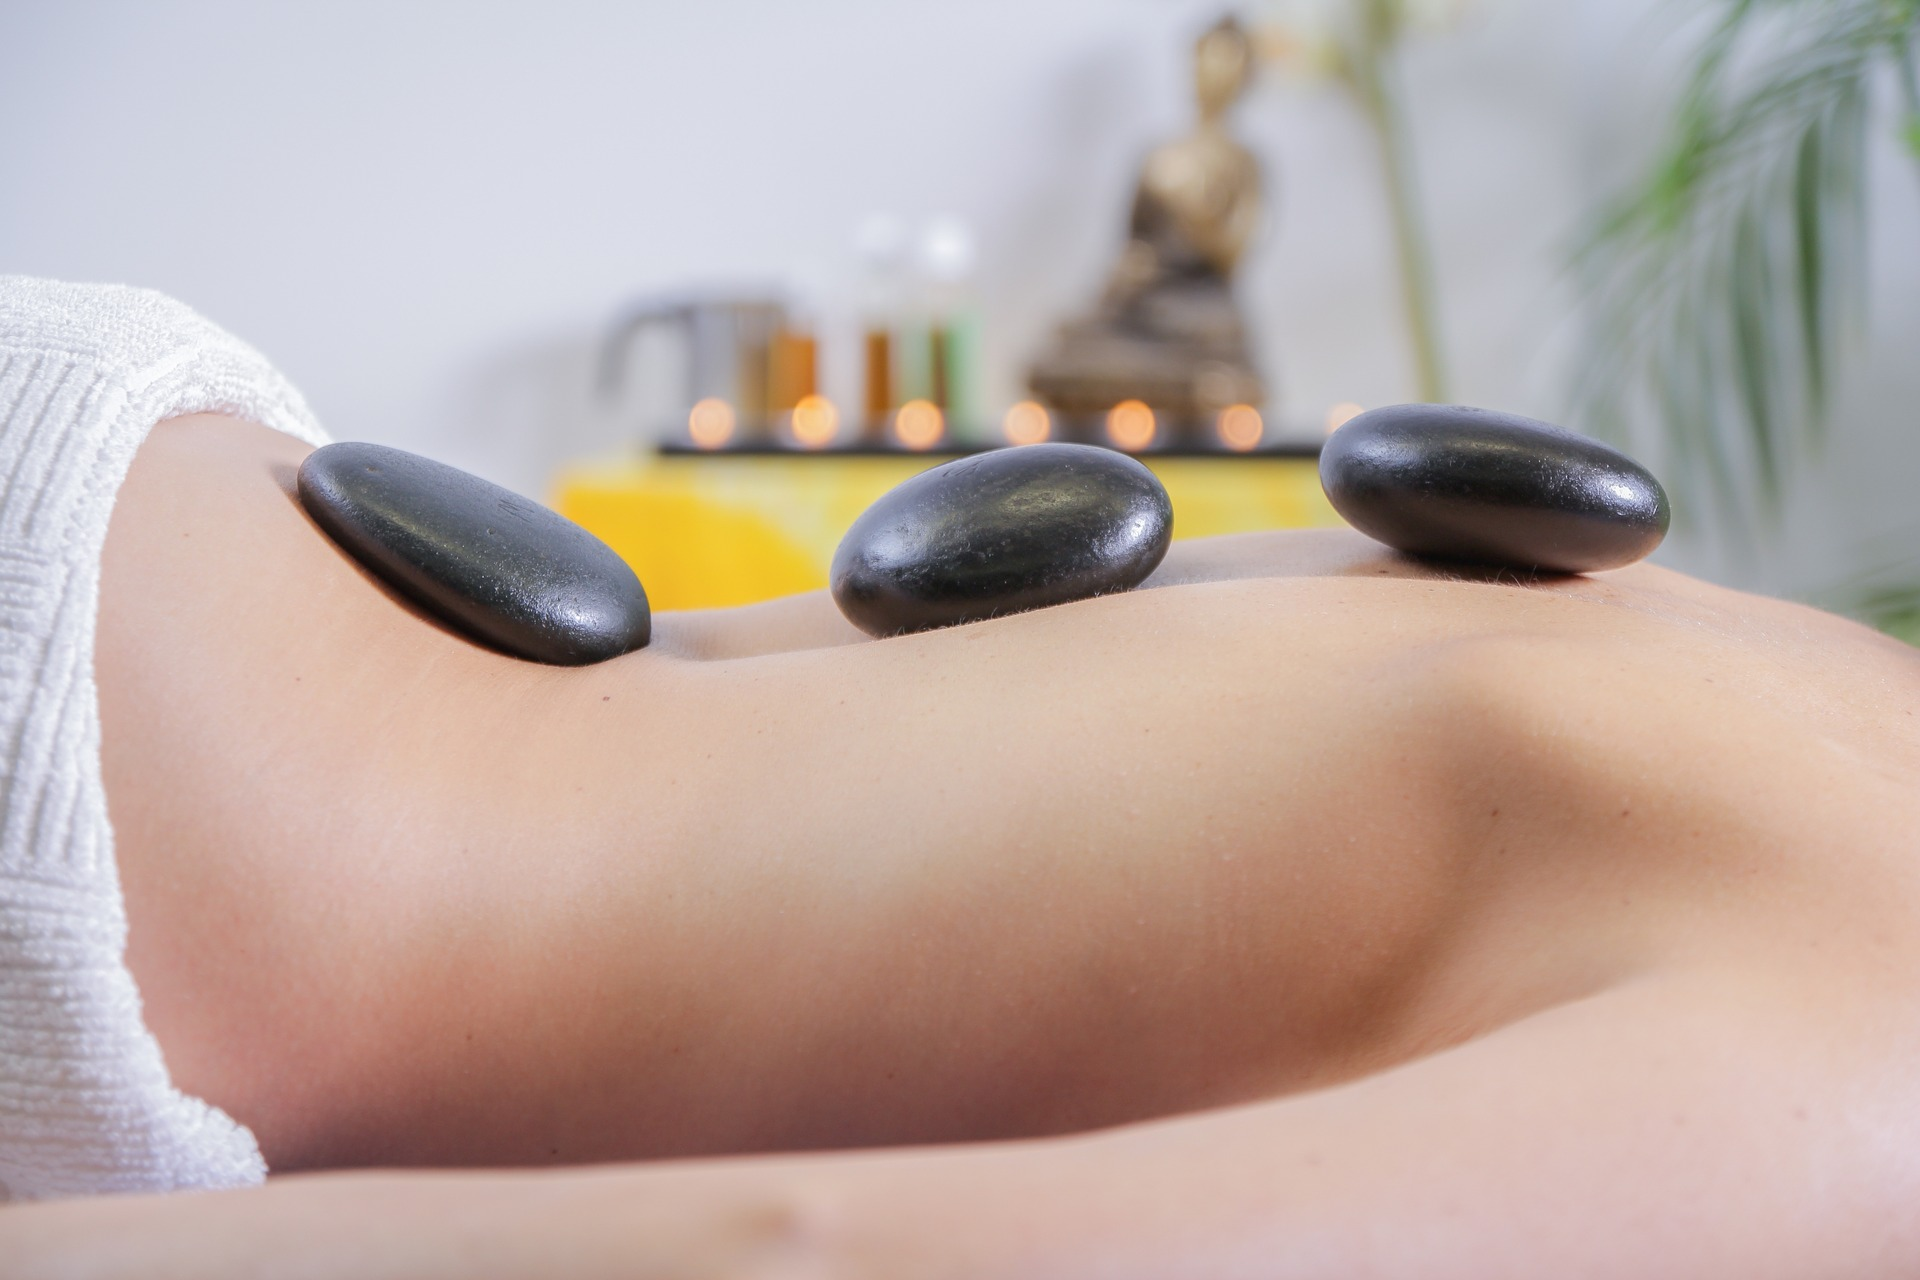 Ultimate Hot Stone Massage at Spa Rockaway features basalt stones to rejuvenate on a deeper level.